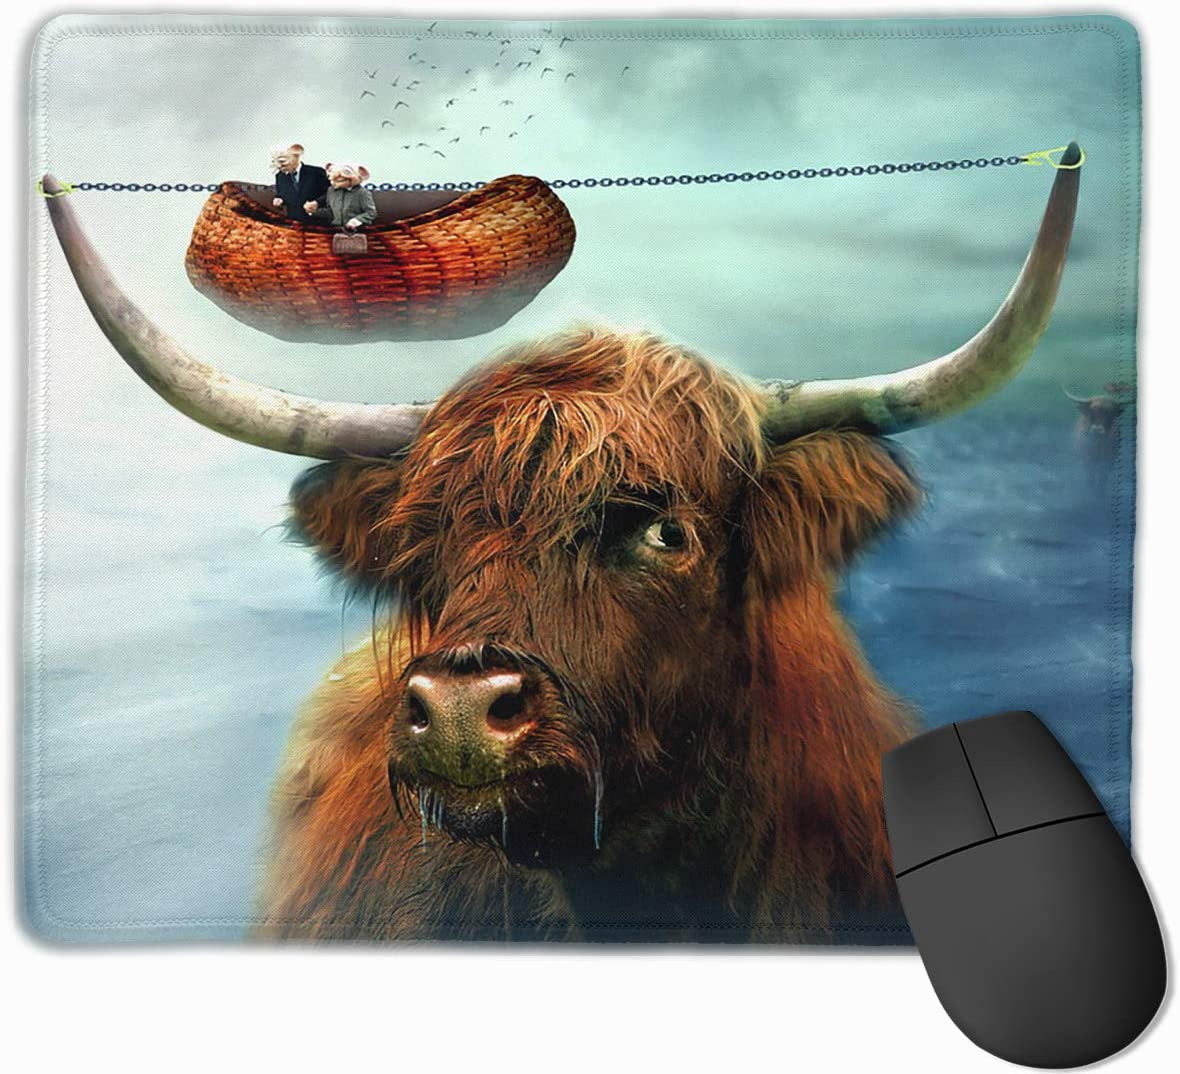 Yuotry Smooth Mouse Pad Pisces Logo Mobile Gaming Mousepad Work Mouse Pad Office Pad